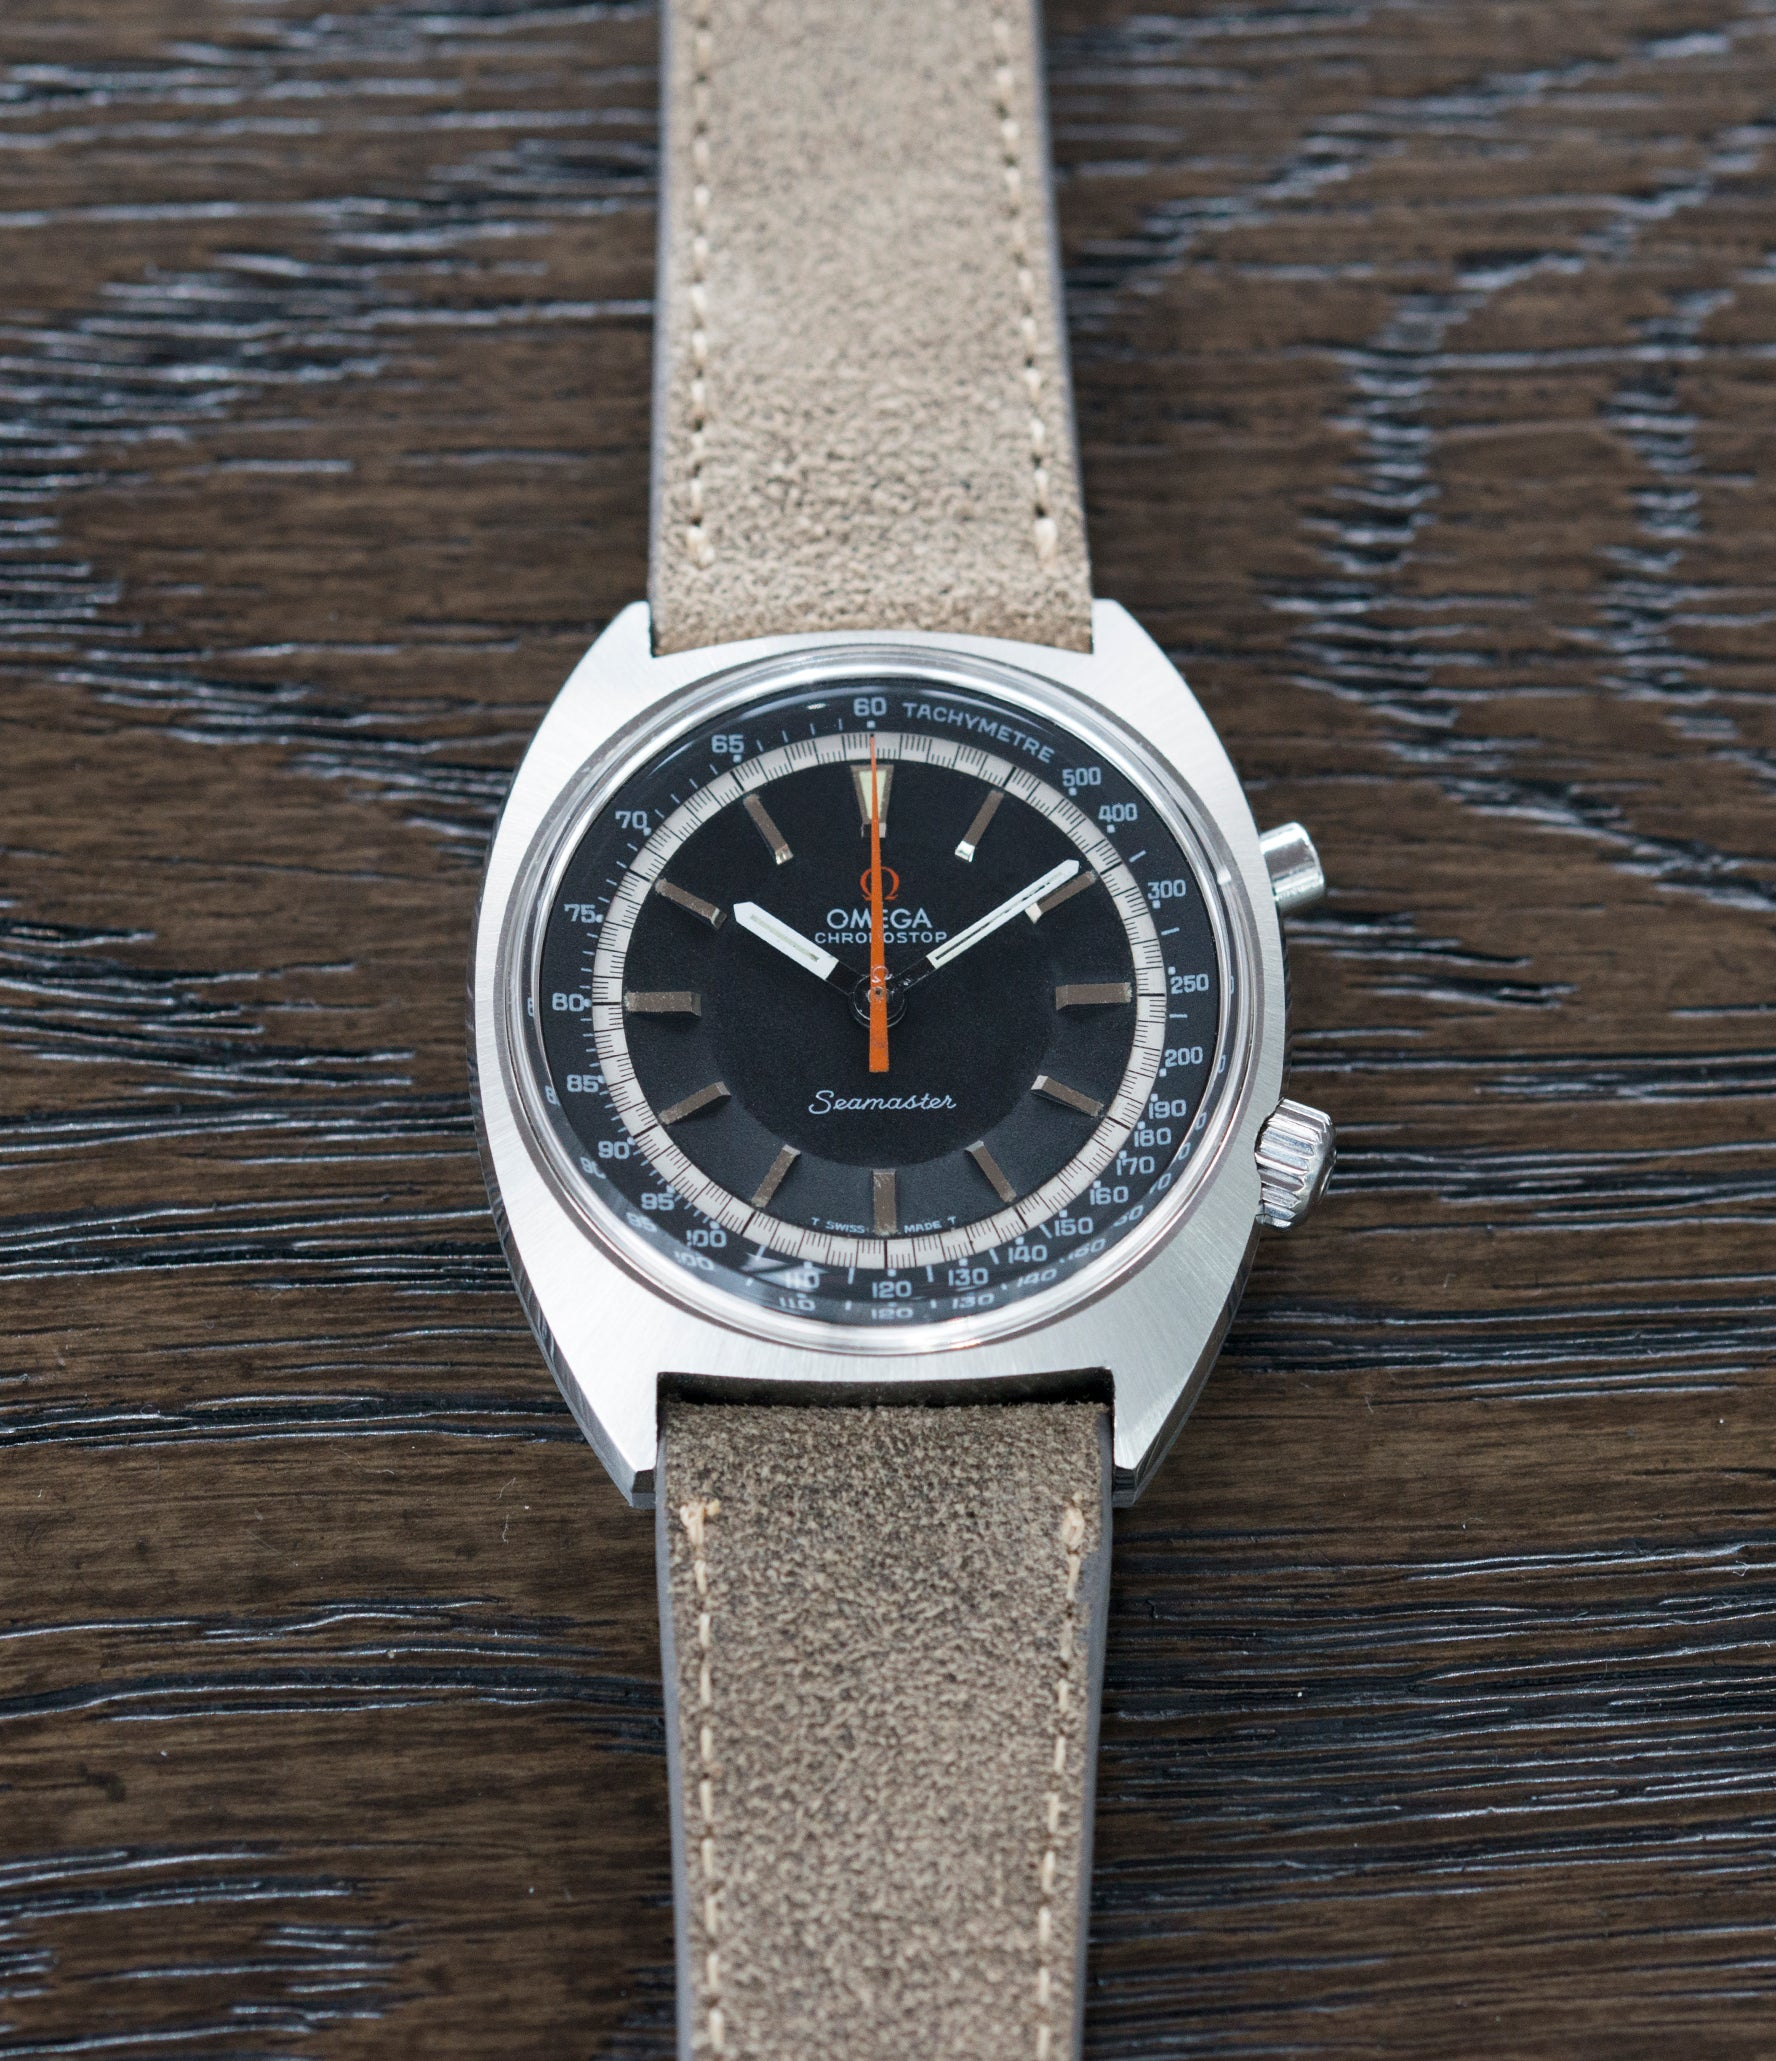 men's cool vintage sport watch chronograph Seamaster 145.007 Chronostop Omega manual-winding Cal. 865 steel chronograph sport watch for sale online at A Collected Man London UK specialist of rare watches